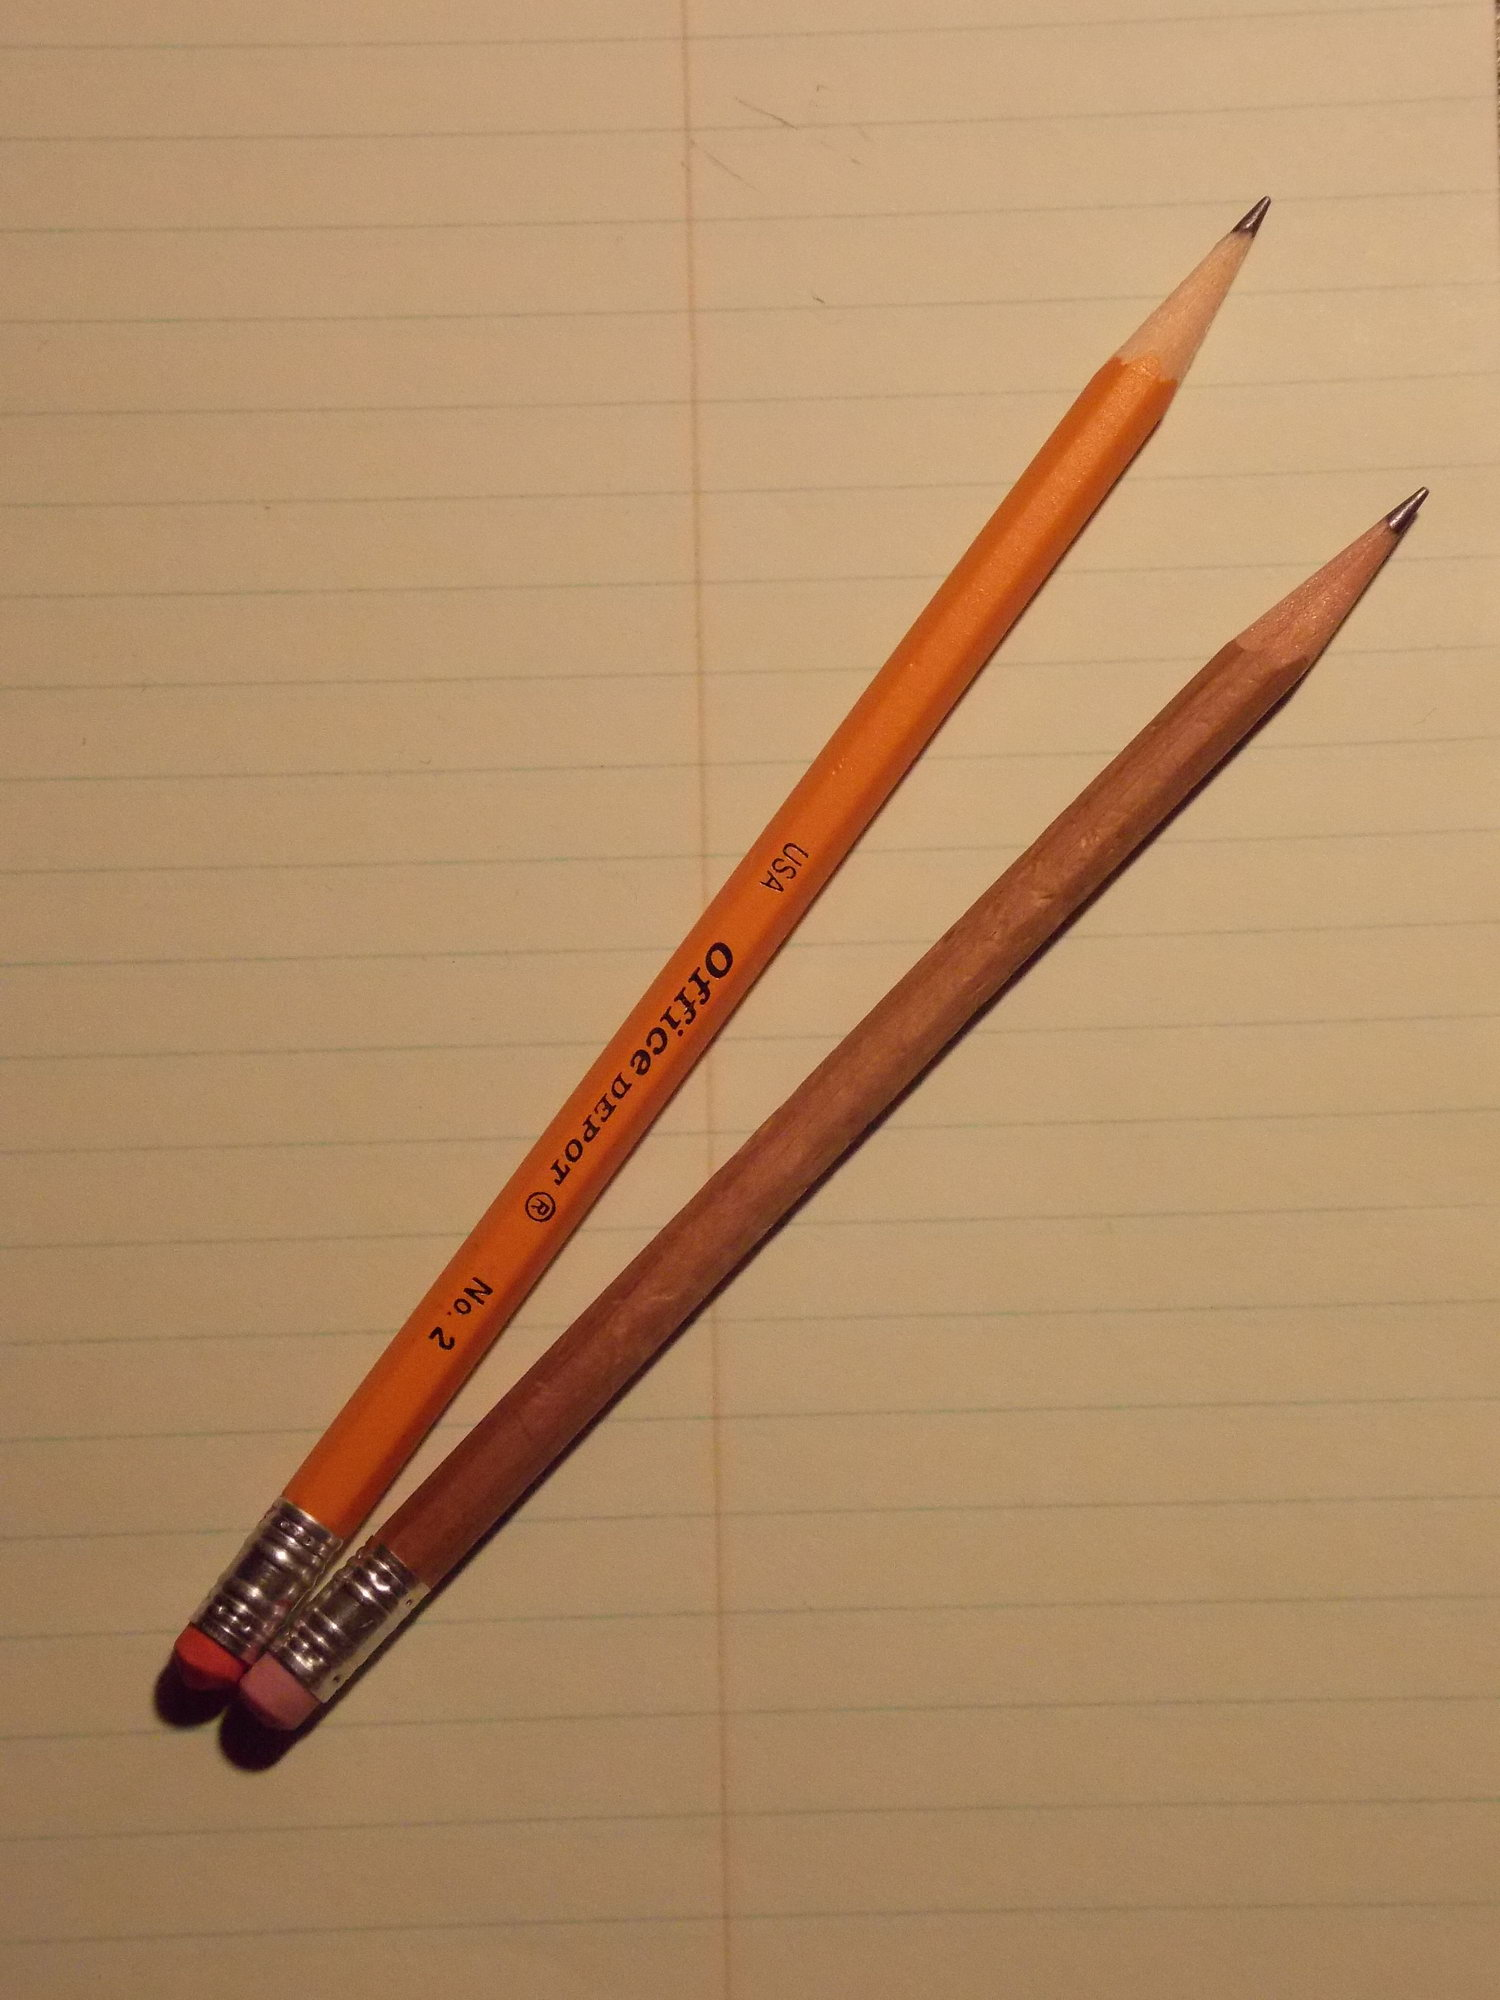 Pencil And Paper Test Pencils when was the last time